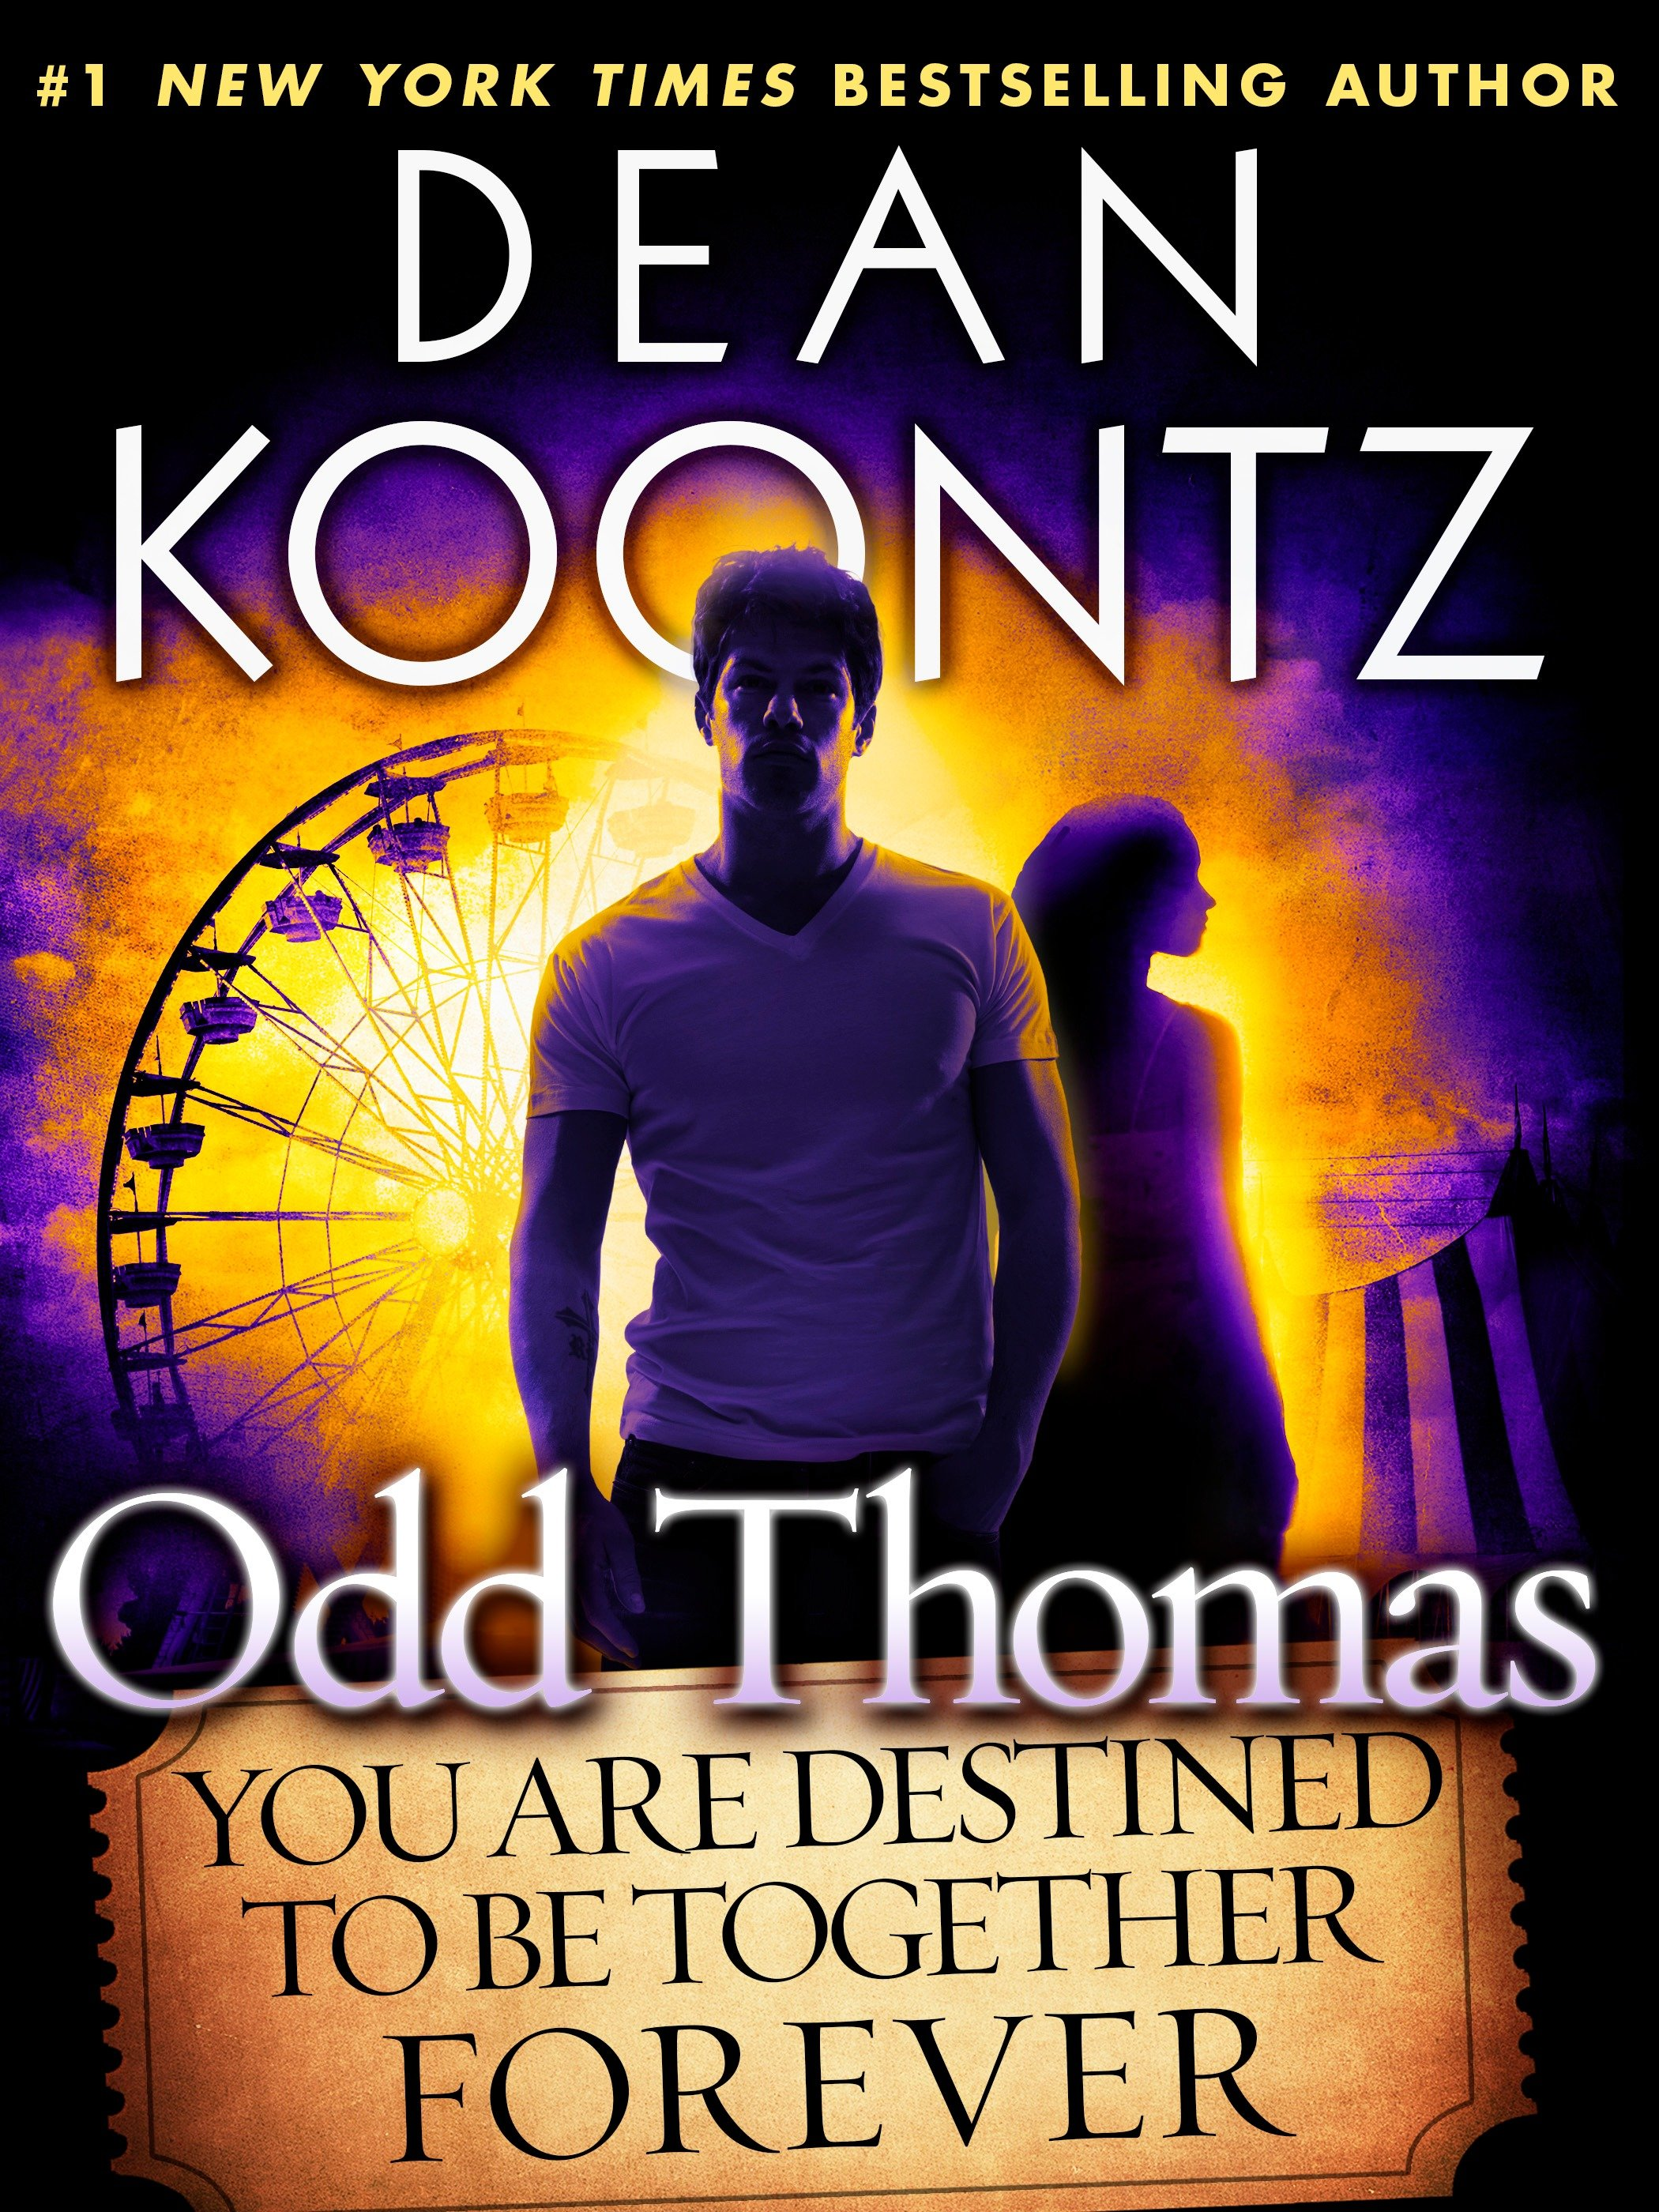 Odd Thomas: you are destined to be together forever cover image